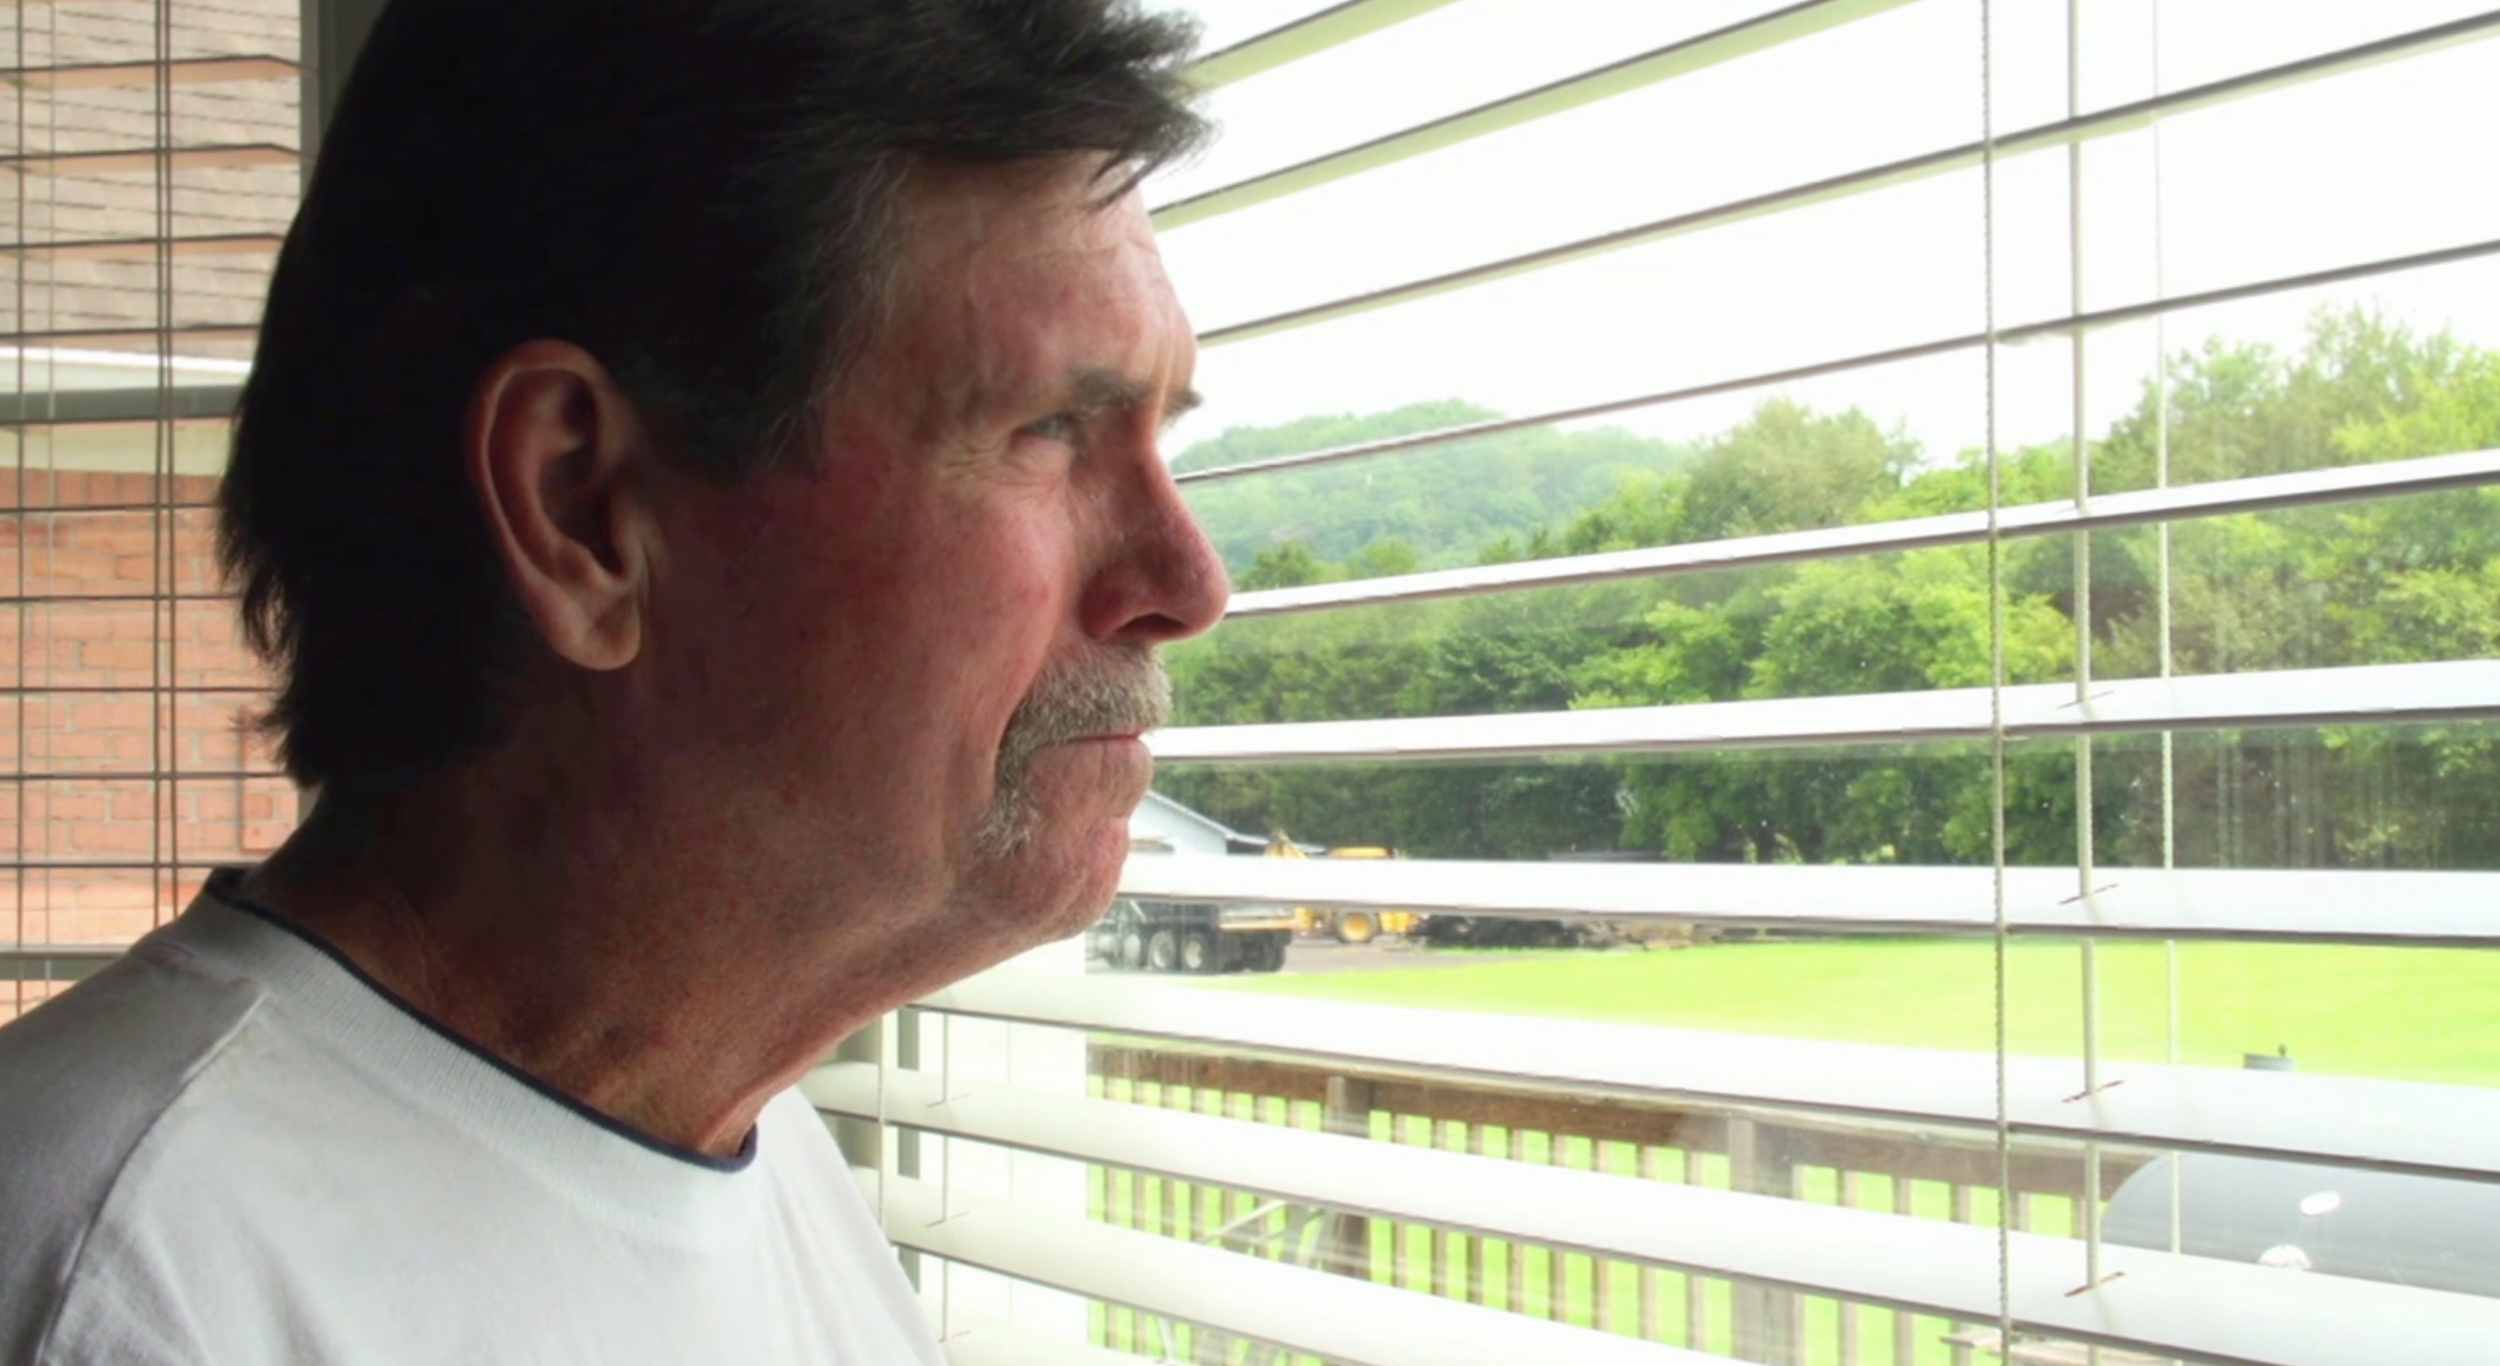 Tony Underhill's Scleroderma Journey - Watch the story of Tony Underhill's comeback after Scleroderma ravaged his body.